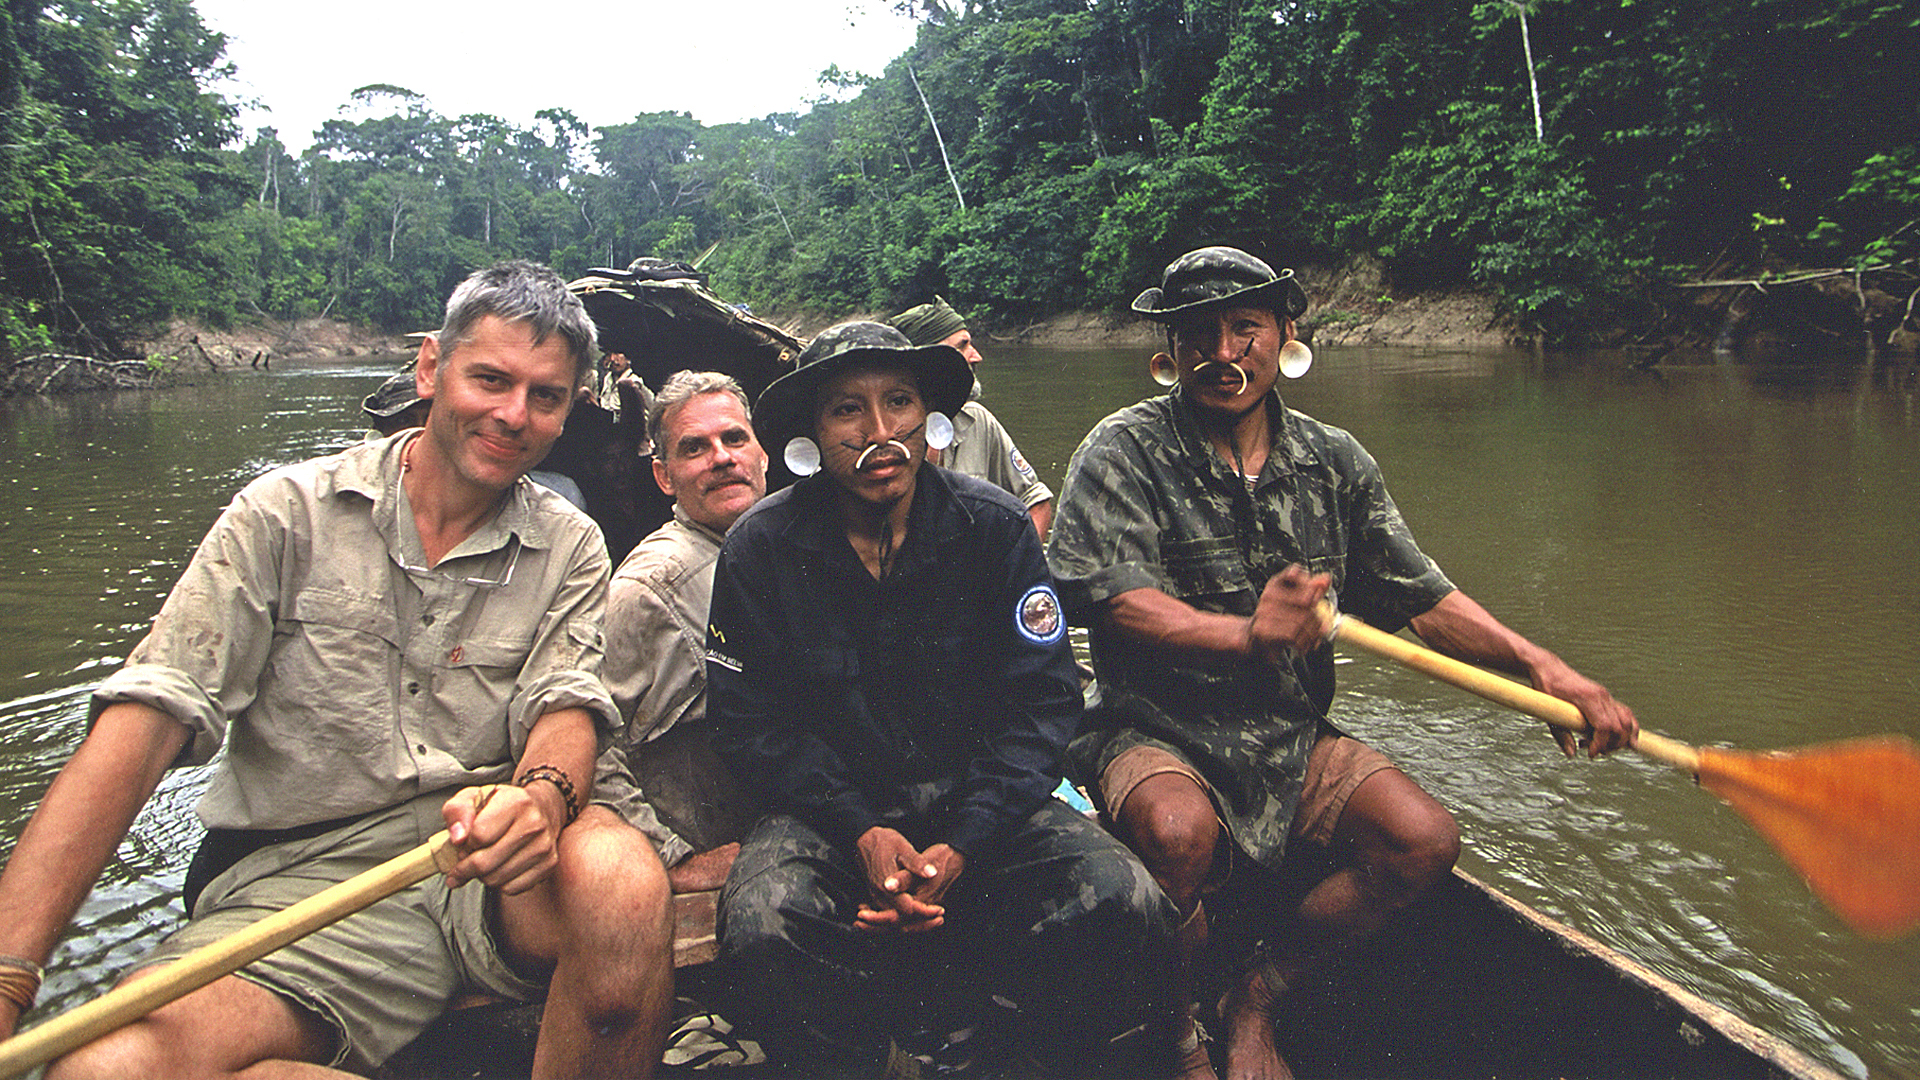 Nicolas Reynard, Scott Wallace, and Matis indigenous scouts, Javari Valley Indigenous Territory, Brazil 2002.